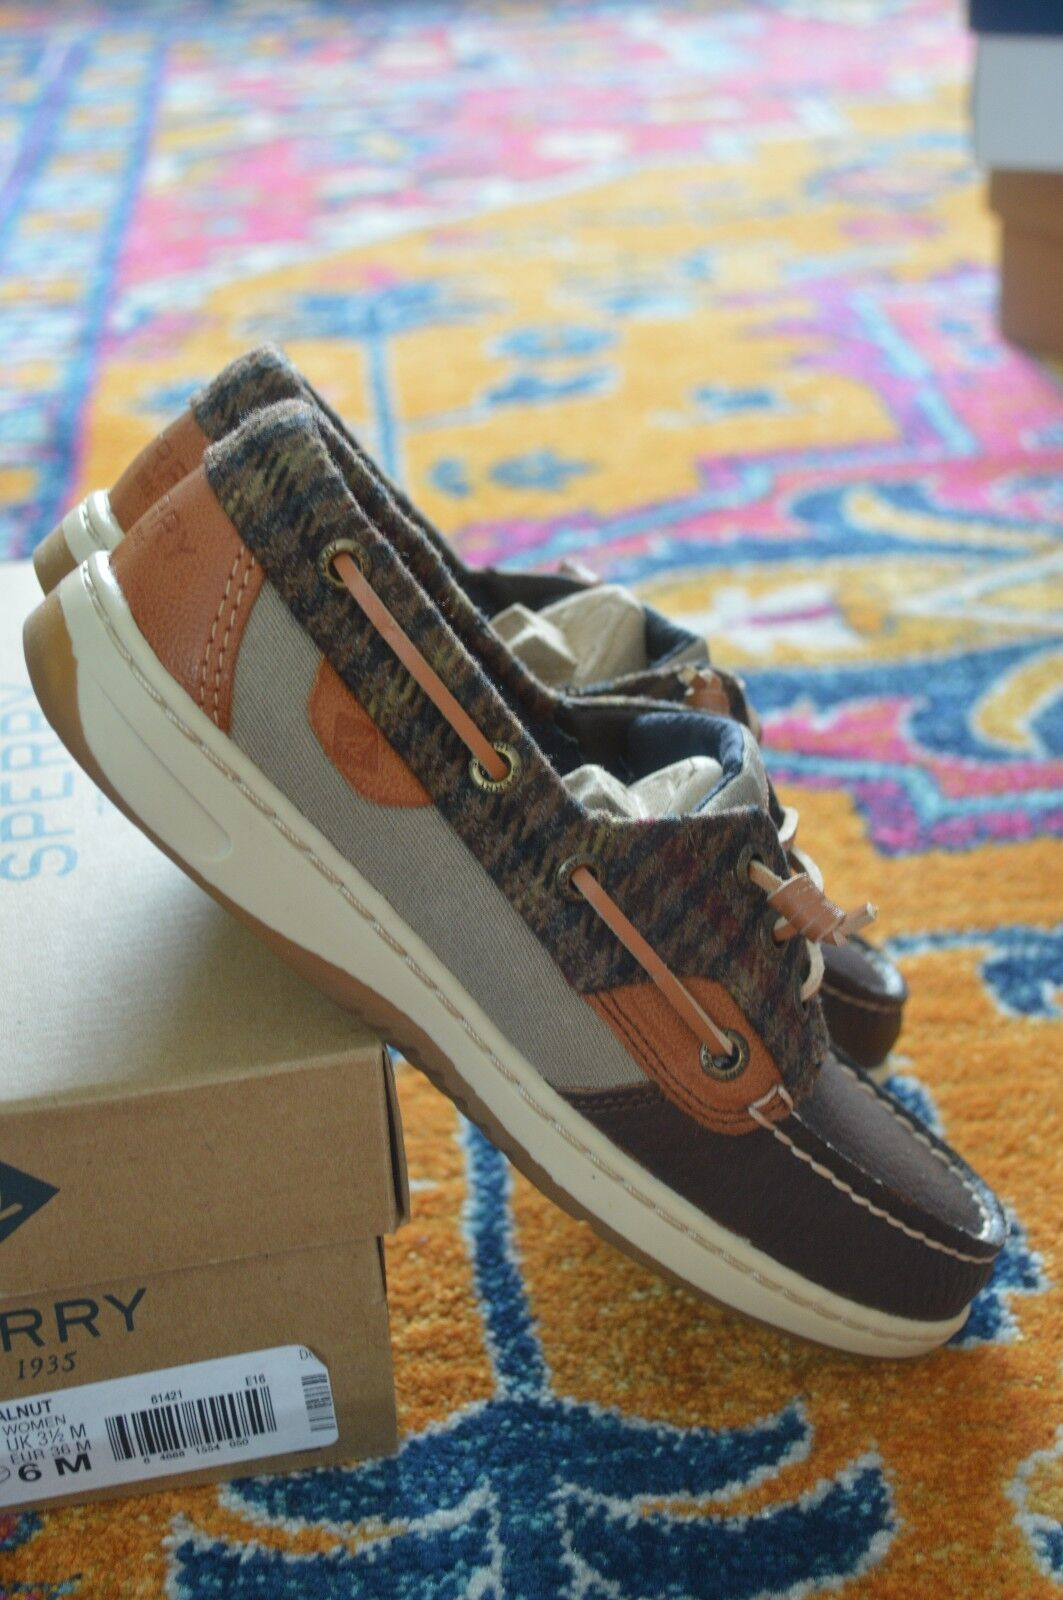 Sperry Women's Rosefish Leather Boat Shoe, Size US 6 ,(STS97581)